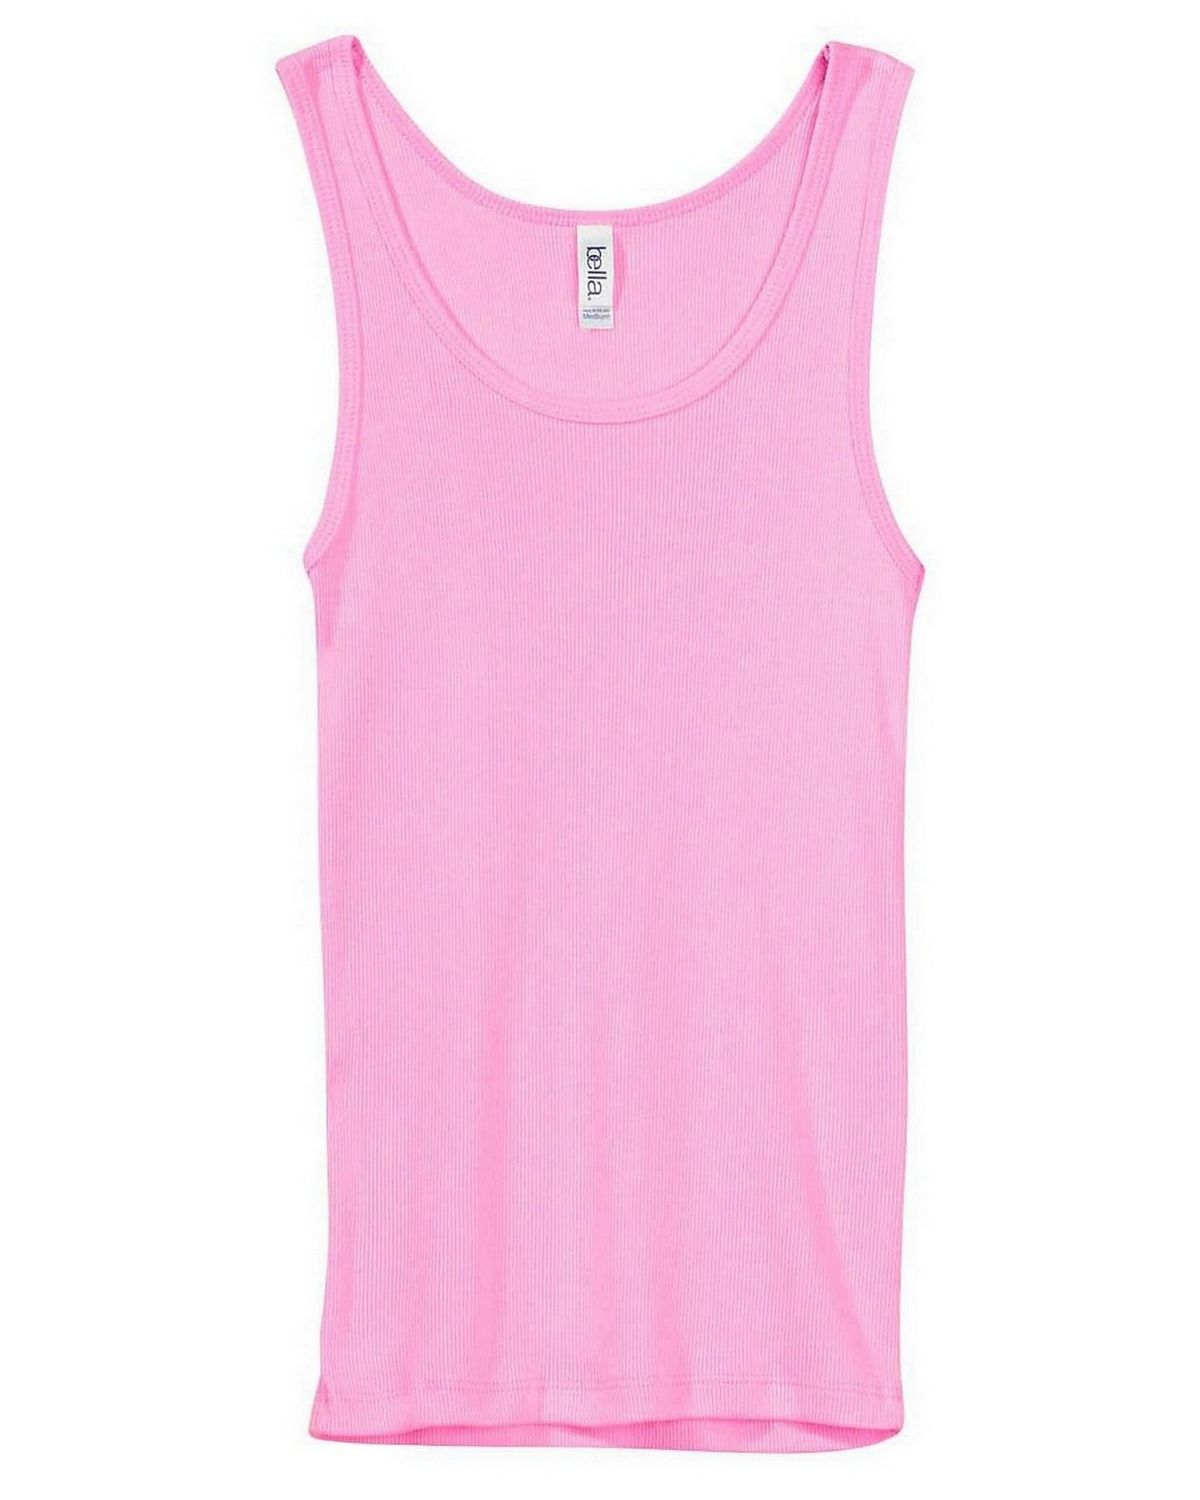 Bella + Canvas 4000 Ladies 2x1 Rib Tank - Pink - M 4000